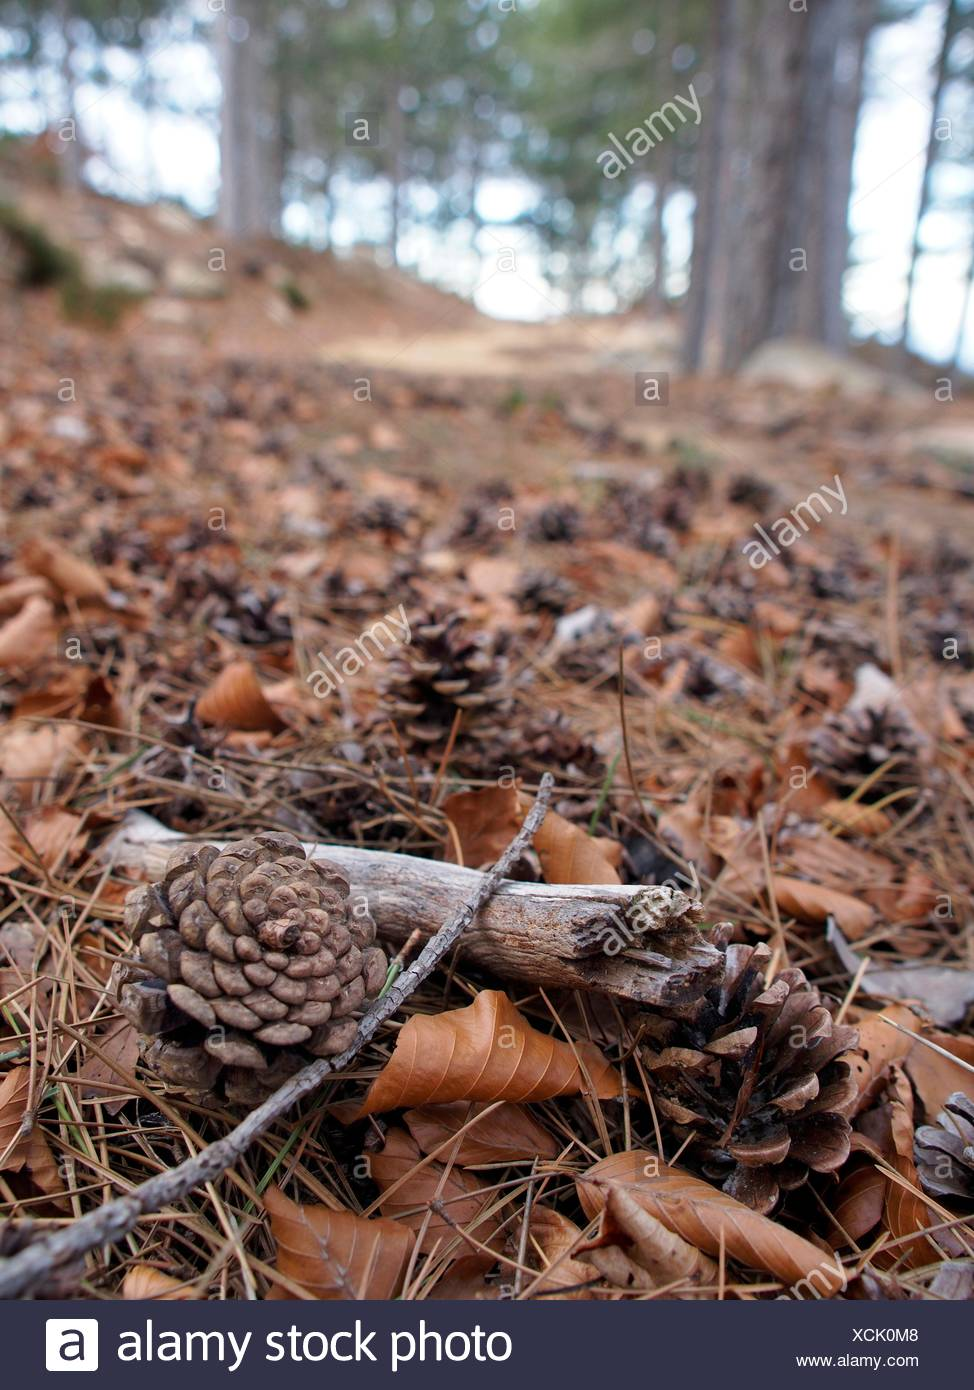 Pinecones at beech forest. Montseny Natural Park. Barcelona province, Catalonia, Spain. - Stock Image